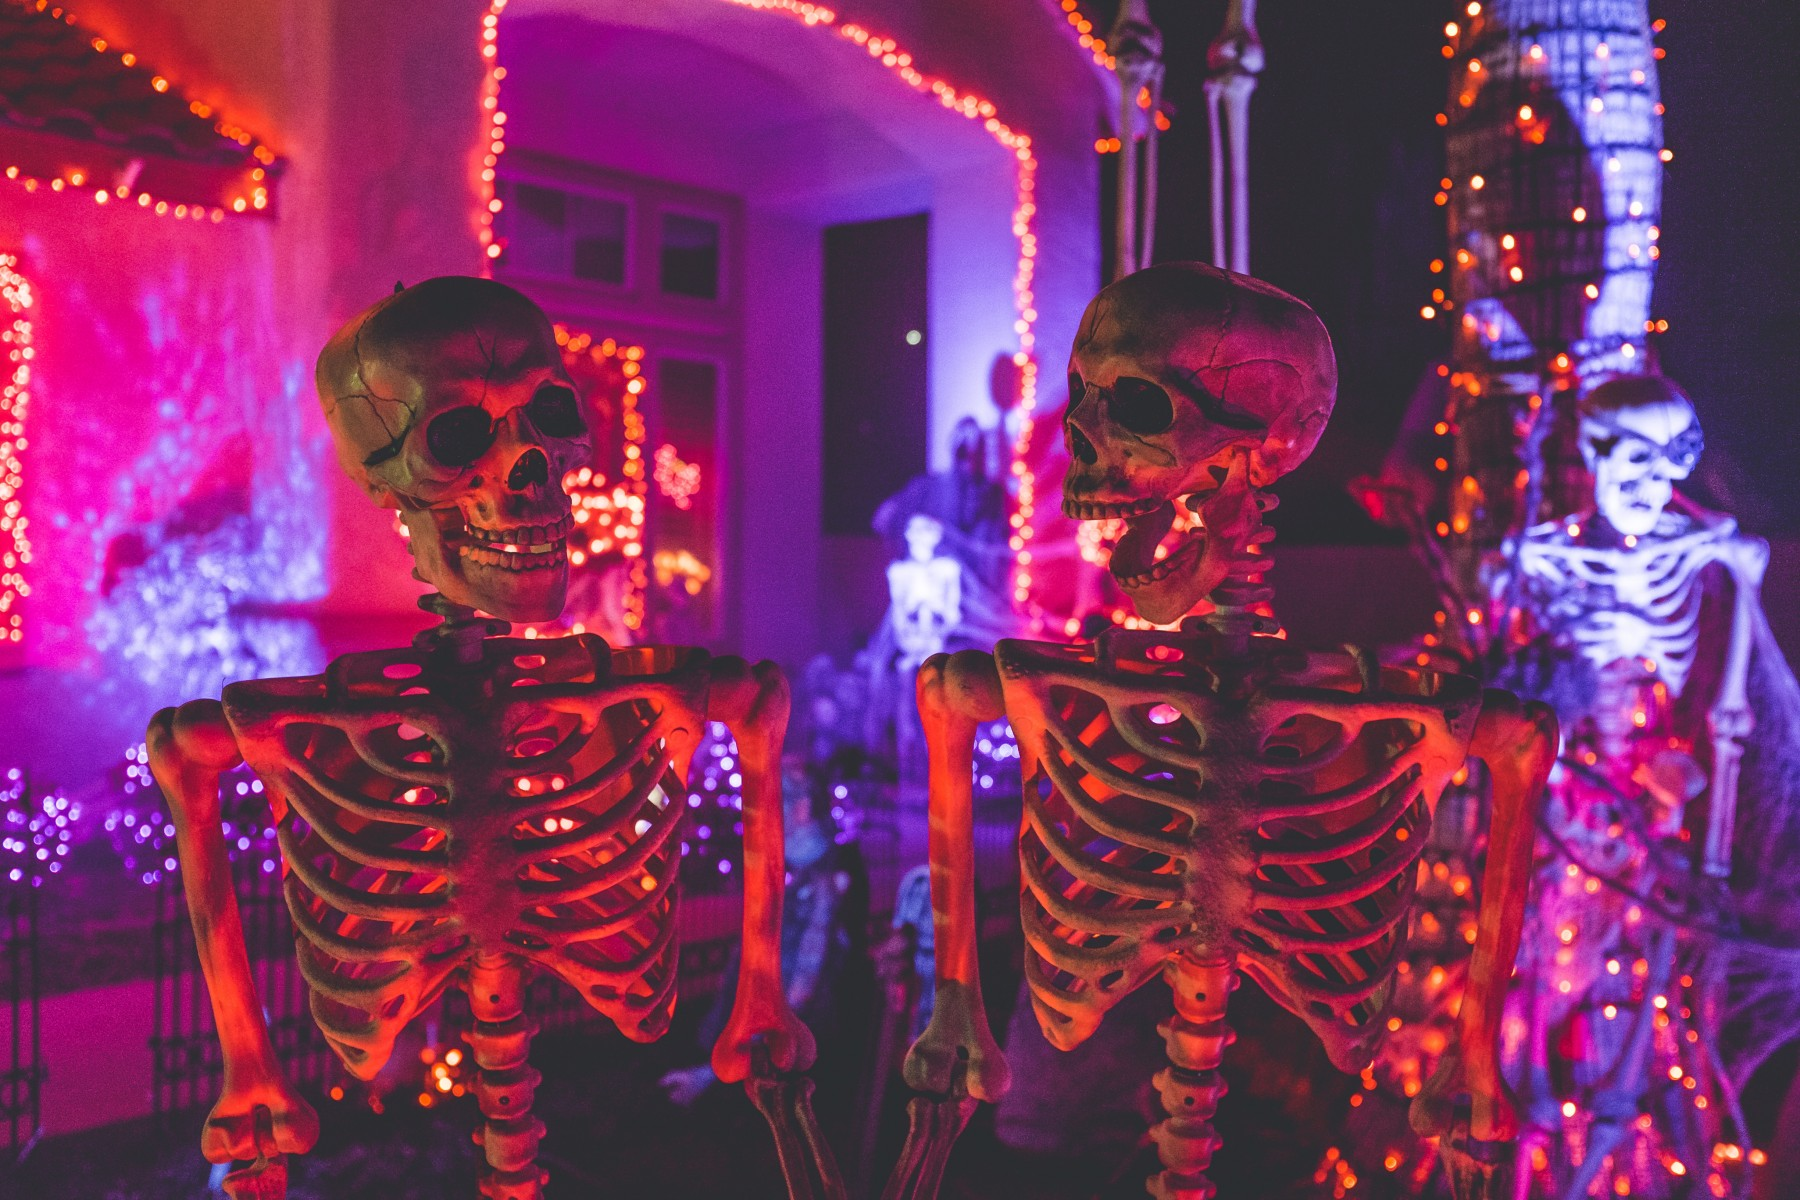 Halloween lights - Tim Kyle